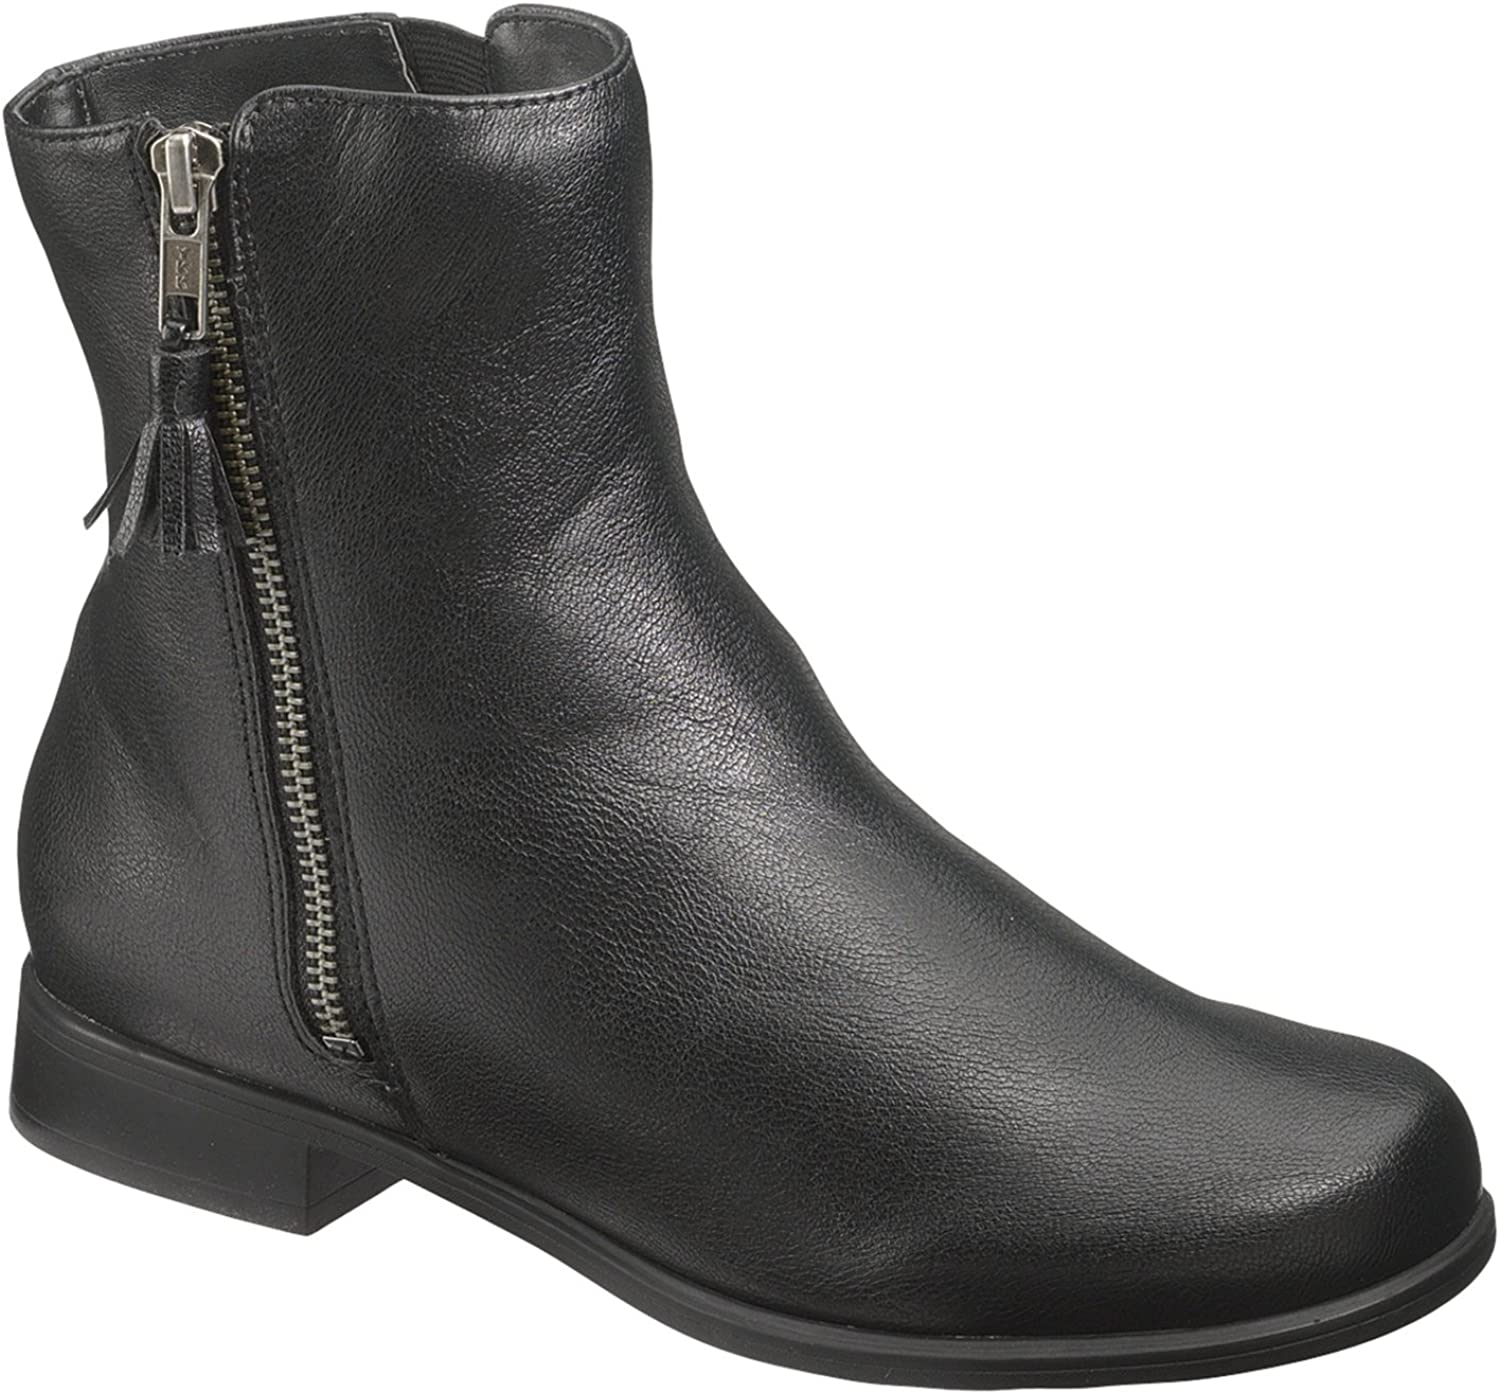 Hush Puppies Women's Motive Ankle Zip Boots